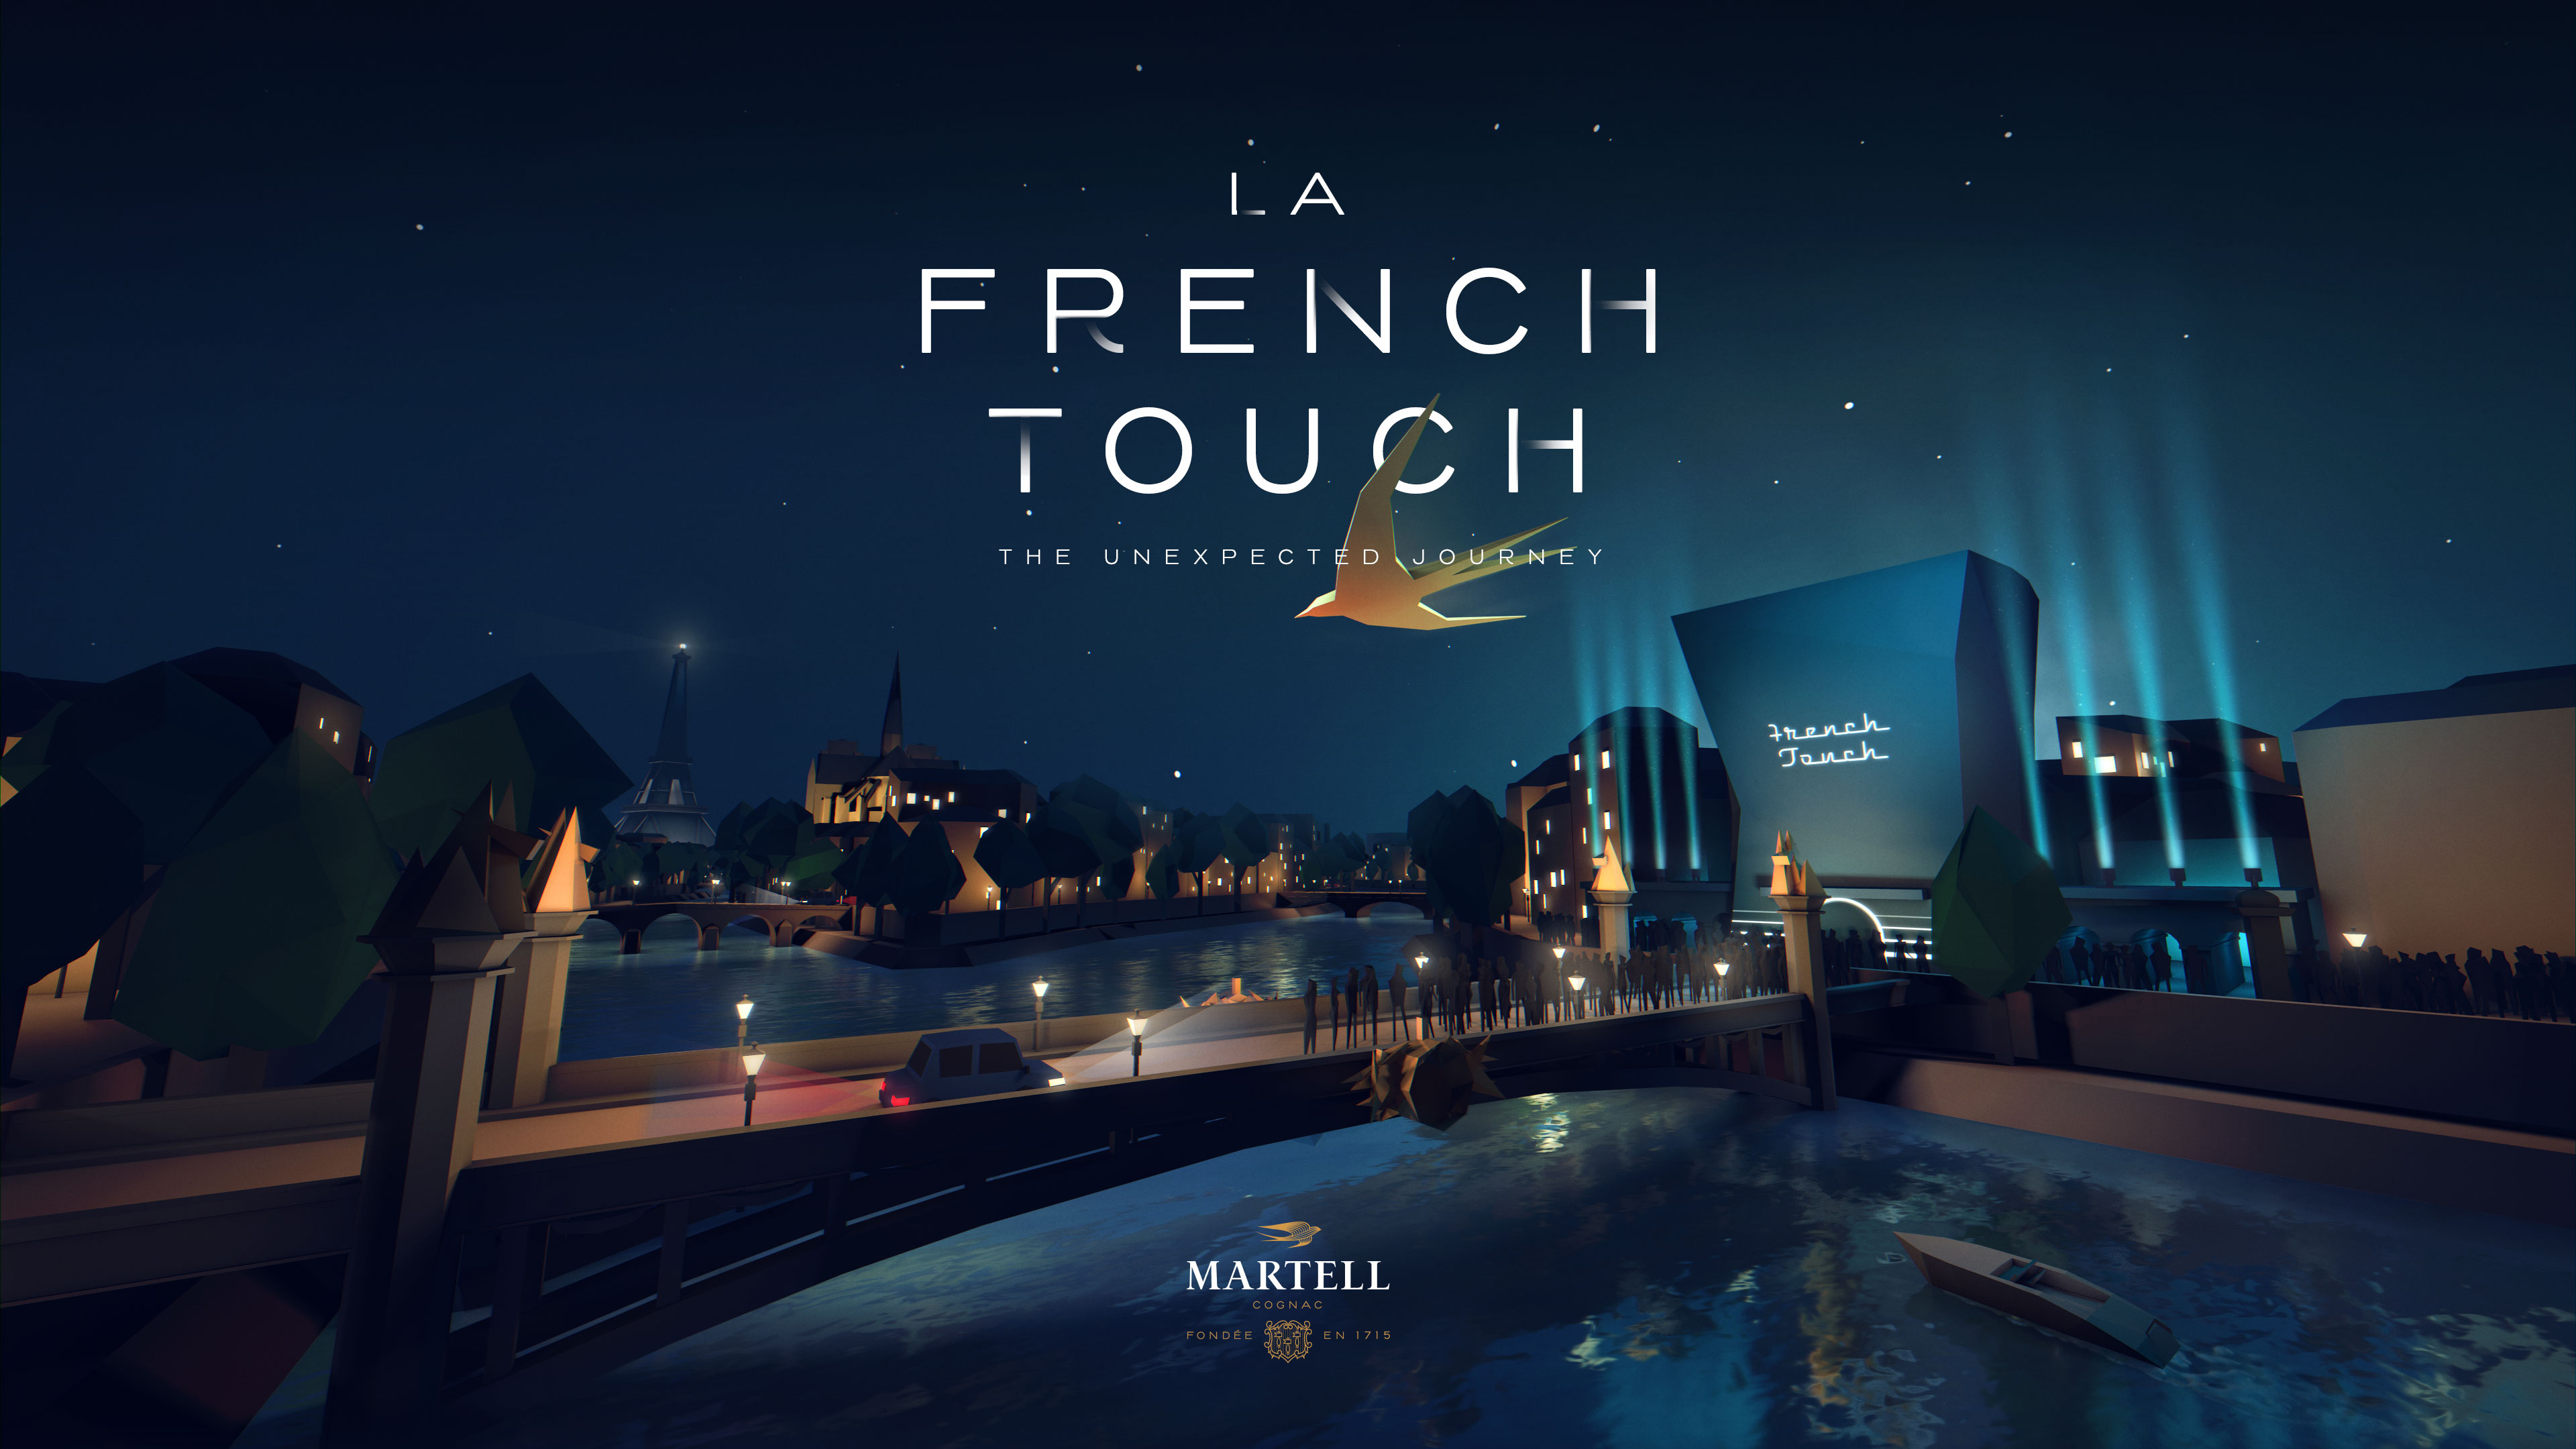 01_LaFrenchTouch_300dpi